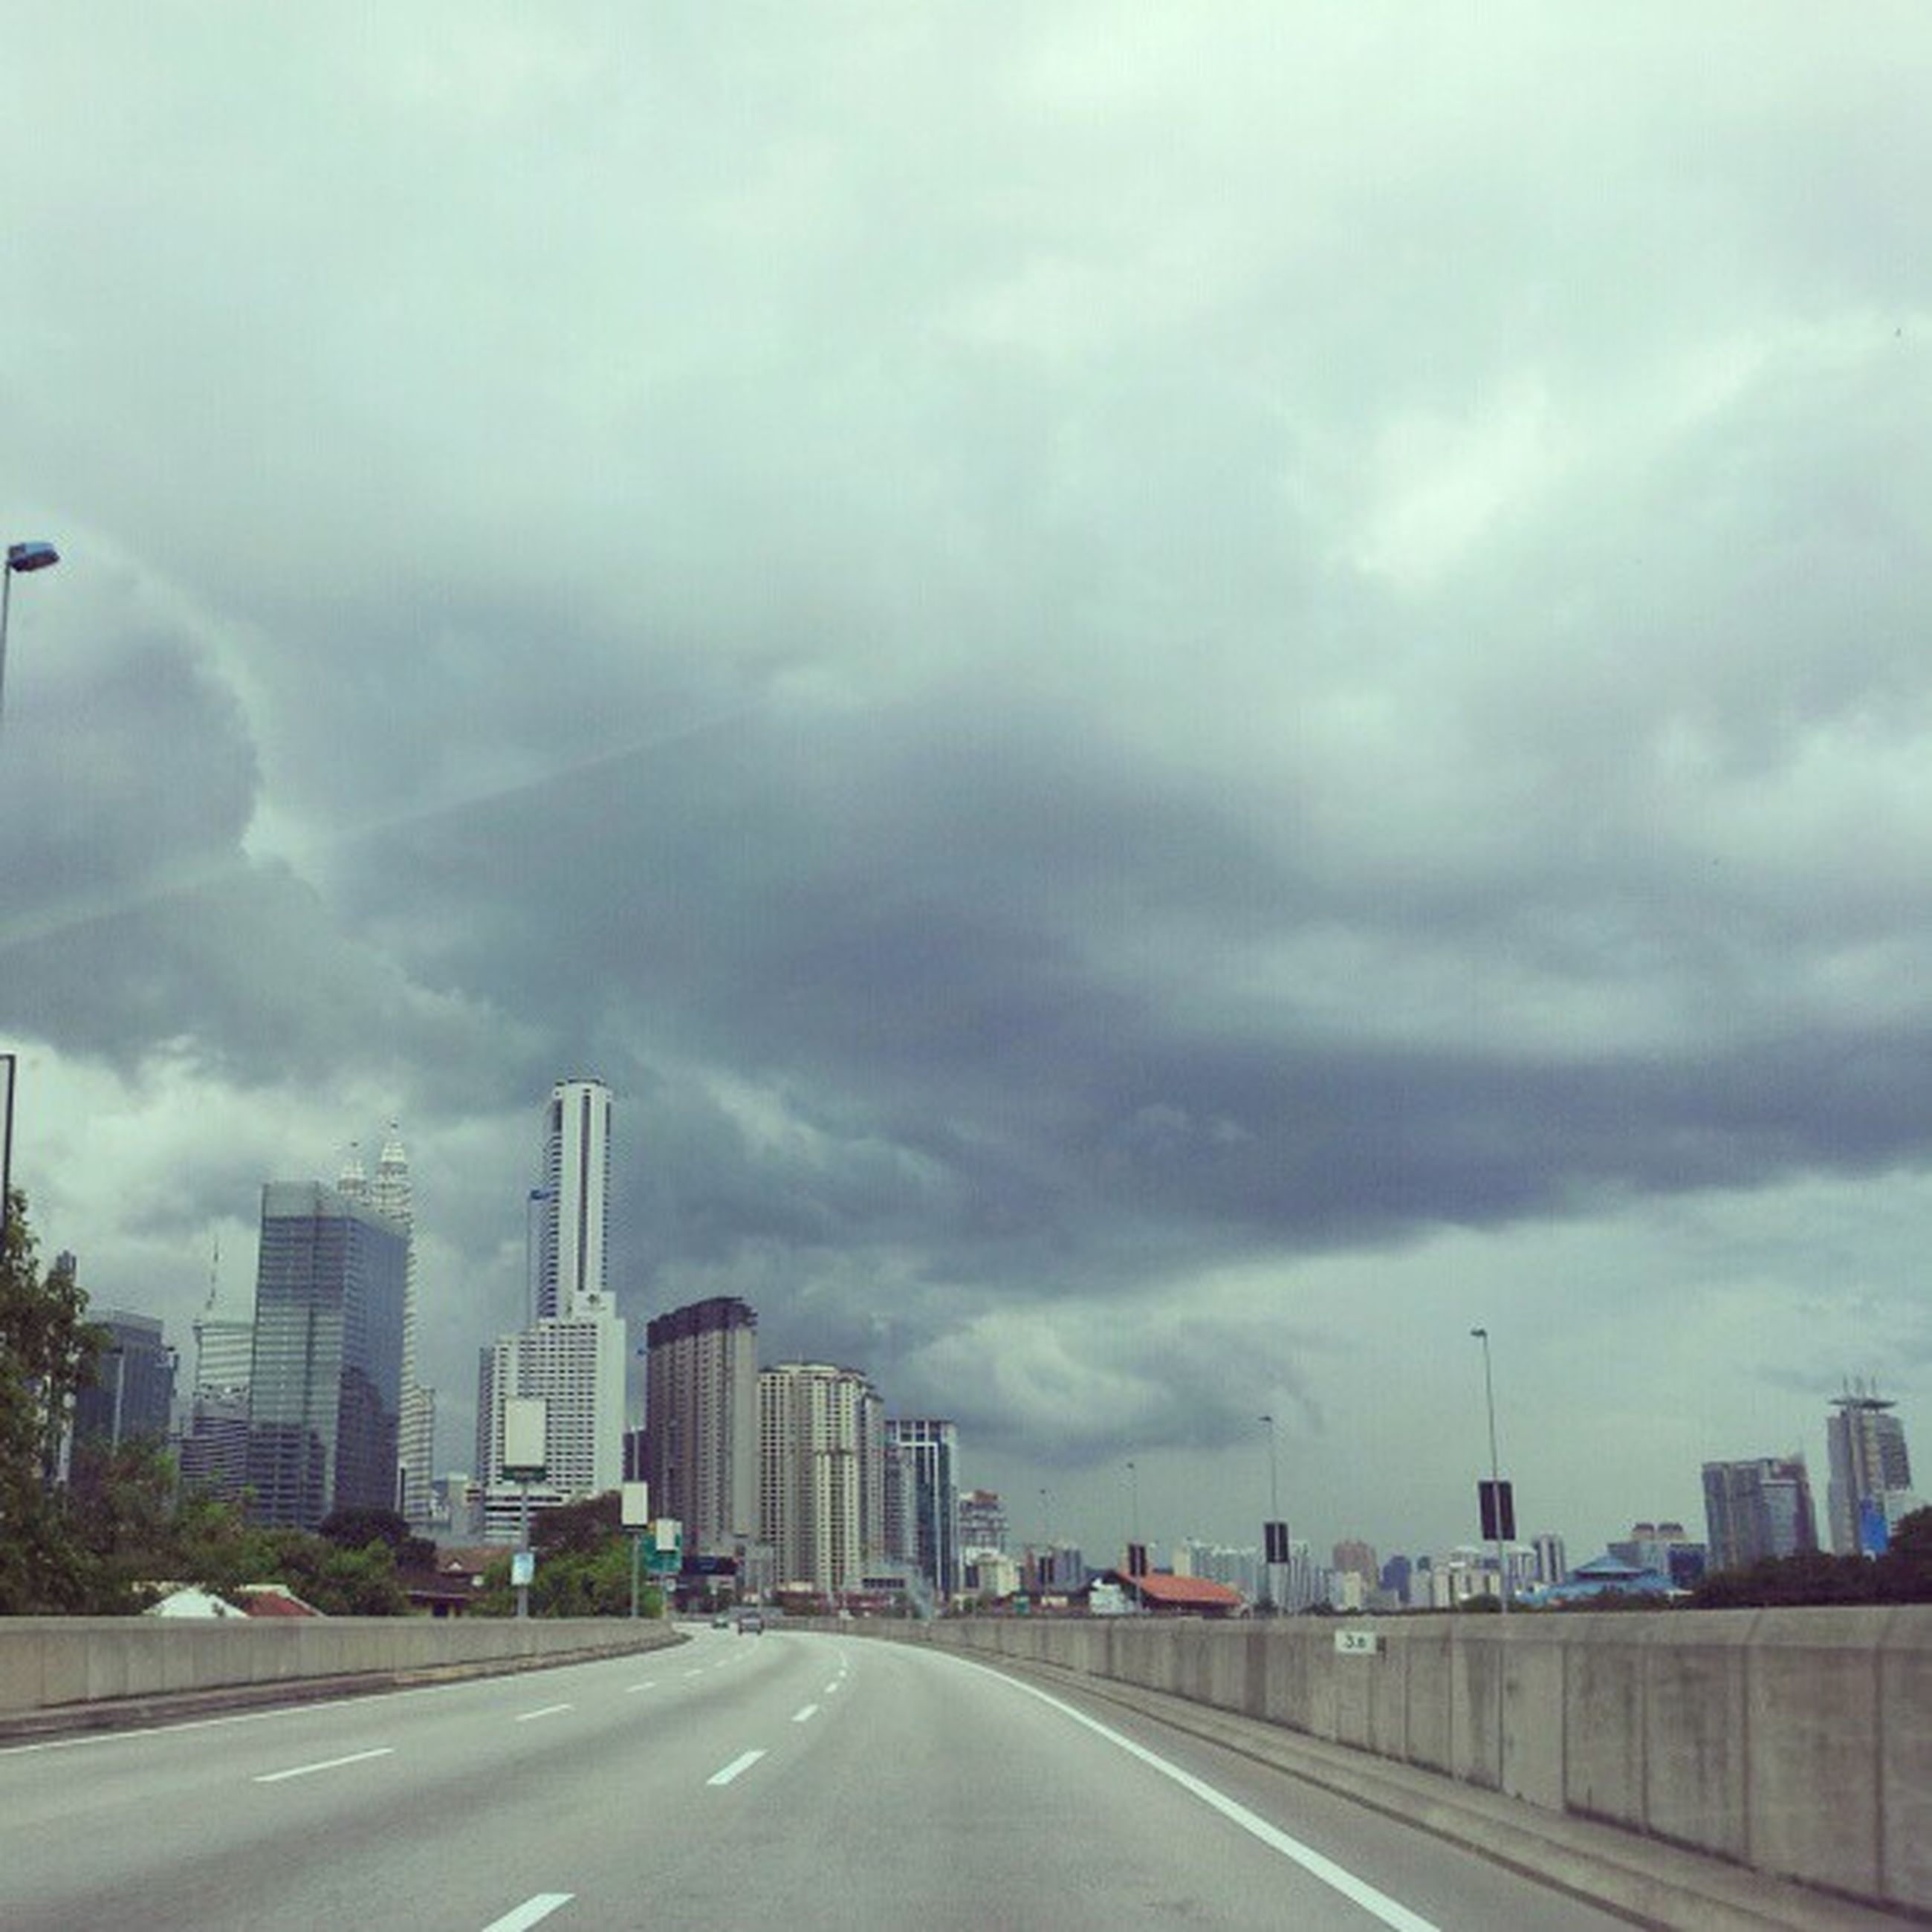 building exterior, sky, architecture, cloud - sky, cloudy, built structure, city, road, transportation, weather, overcast, street, the way forward, car, land vehicle, storm cloud, cityscape, cloud, road marking, city life